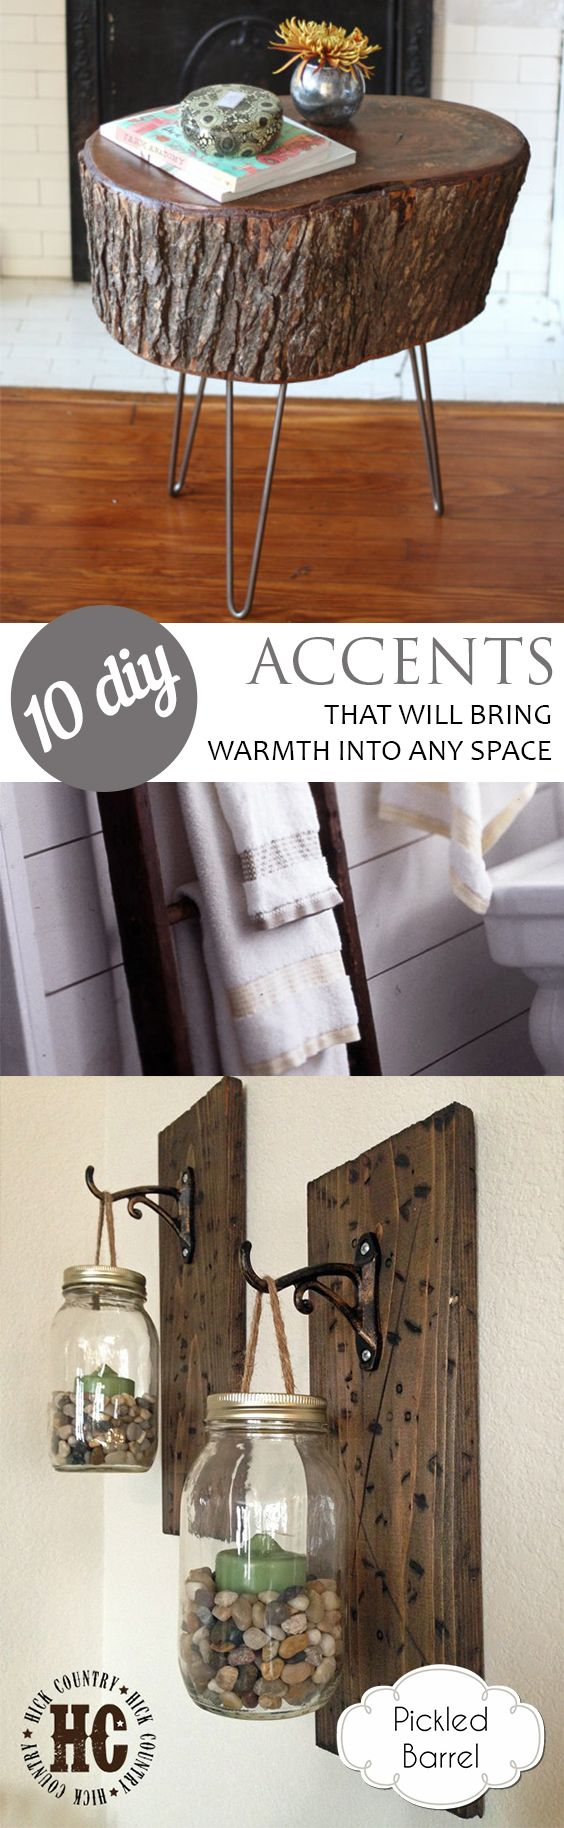 Rustic accents rustic accents for the home diy projects rustic diy projects